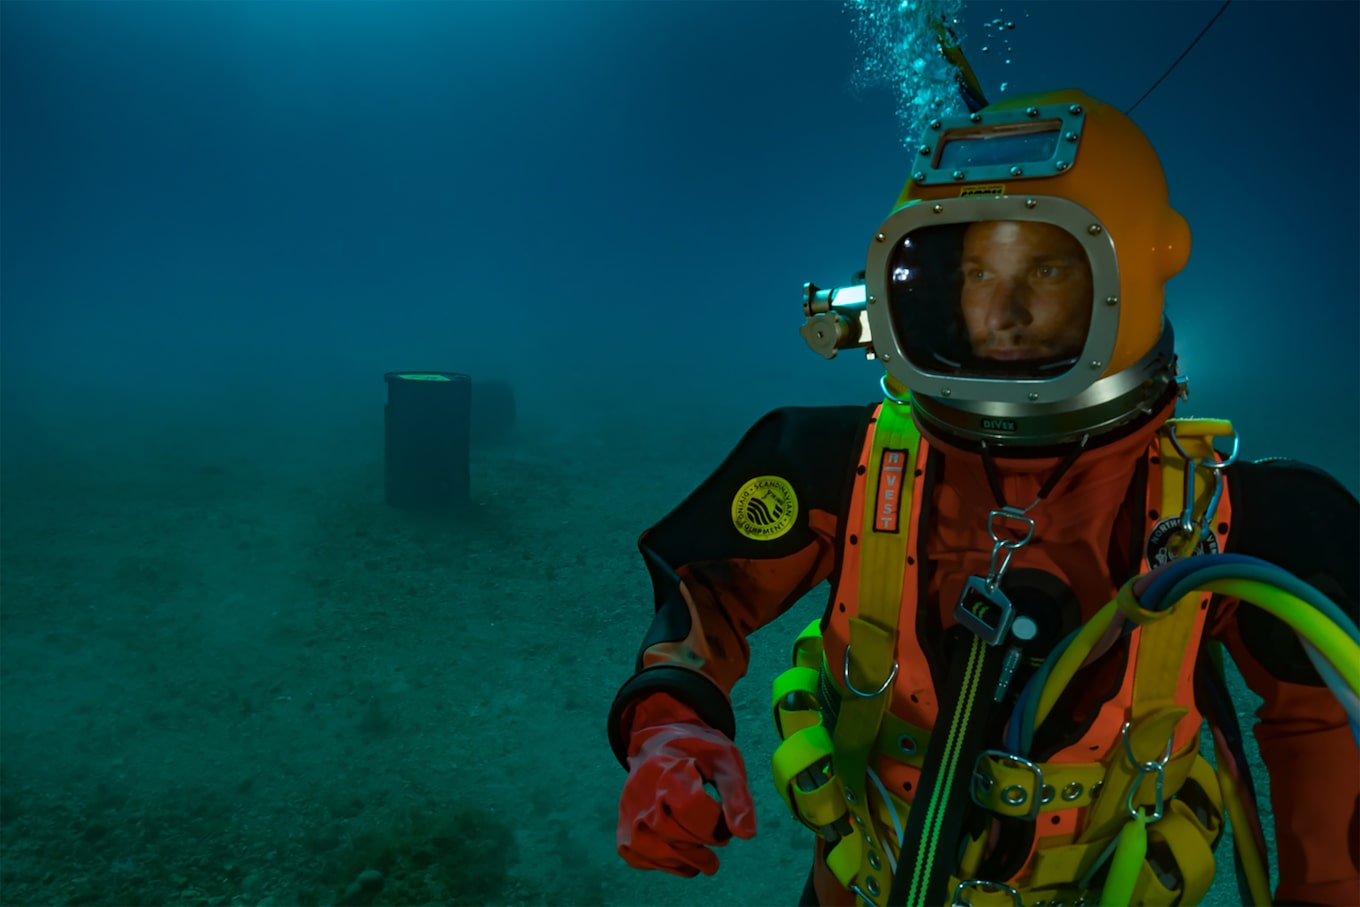 Alexis Rosenfeld sony alpha 7r2 man in diving suit standing on the floor below the sea